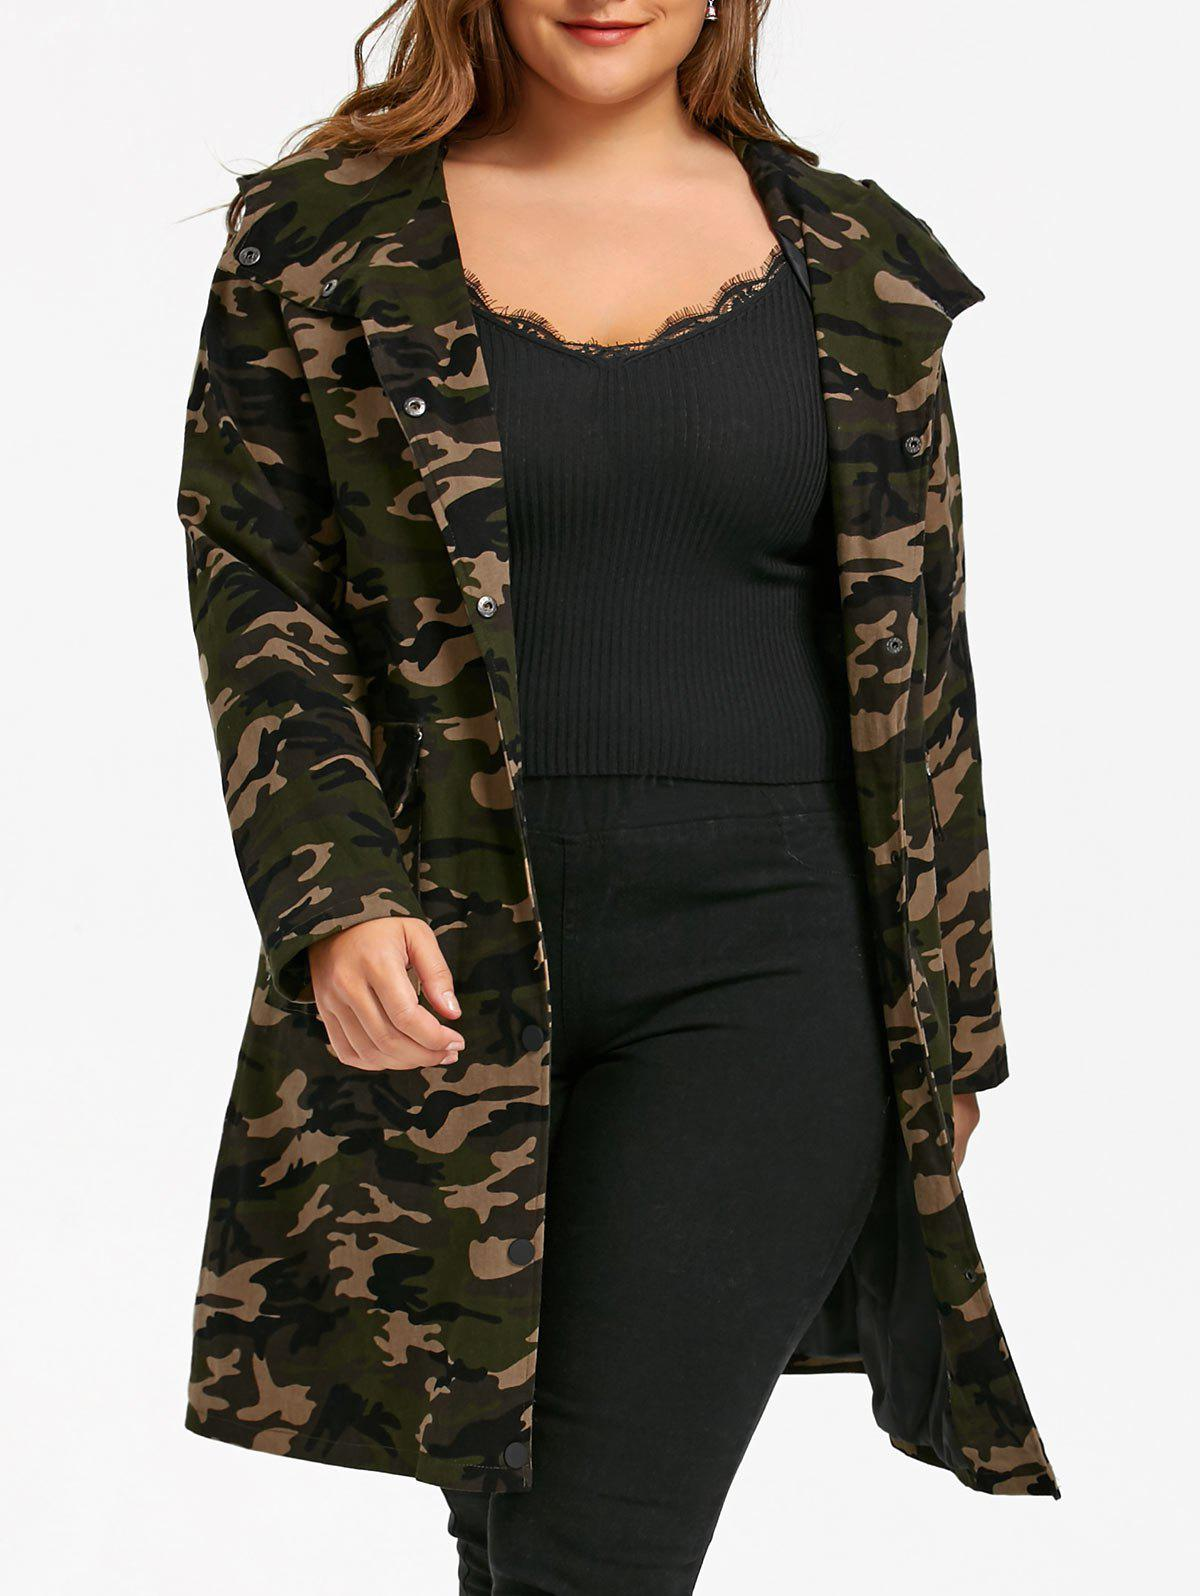 Plus Size Flap Pockets Hooded Camouflage Coat plus size flap pockets hooded camouflage coat